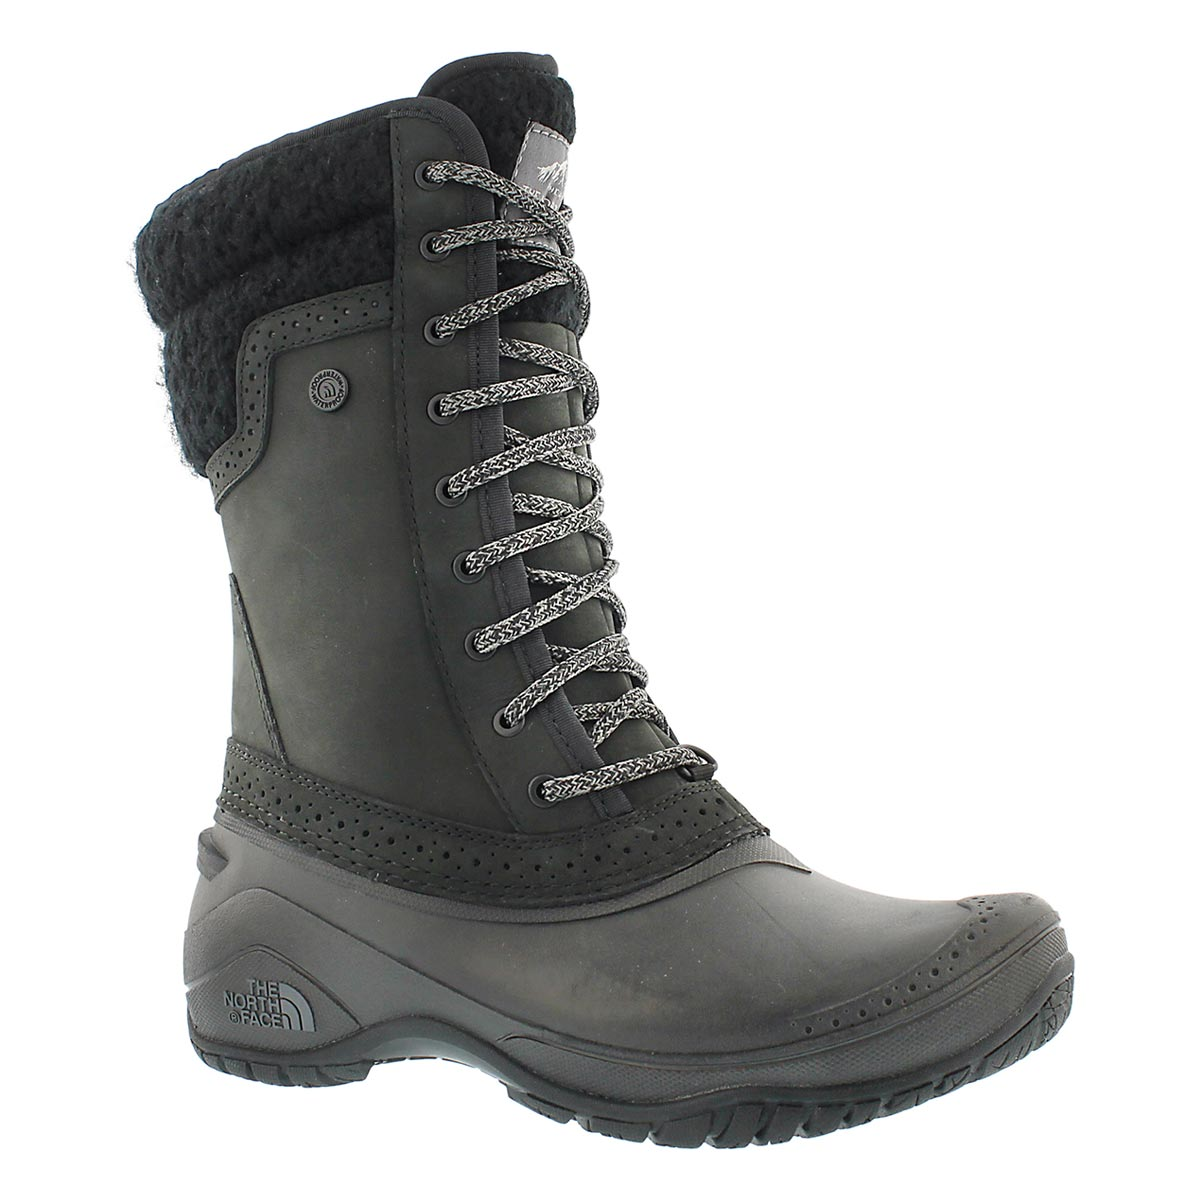 Women's SHELLISTA II MID blk/gry winter boots